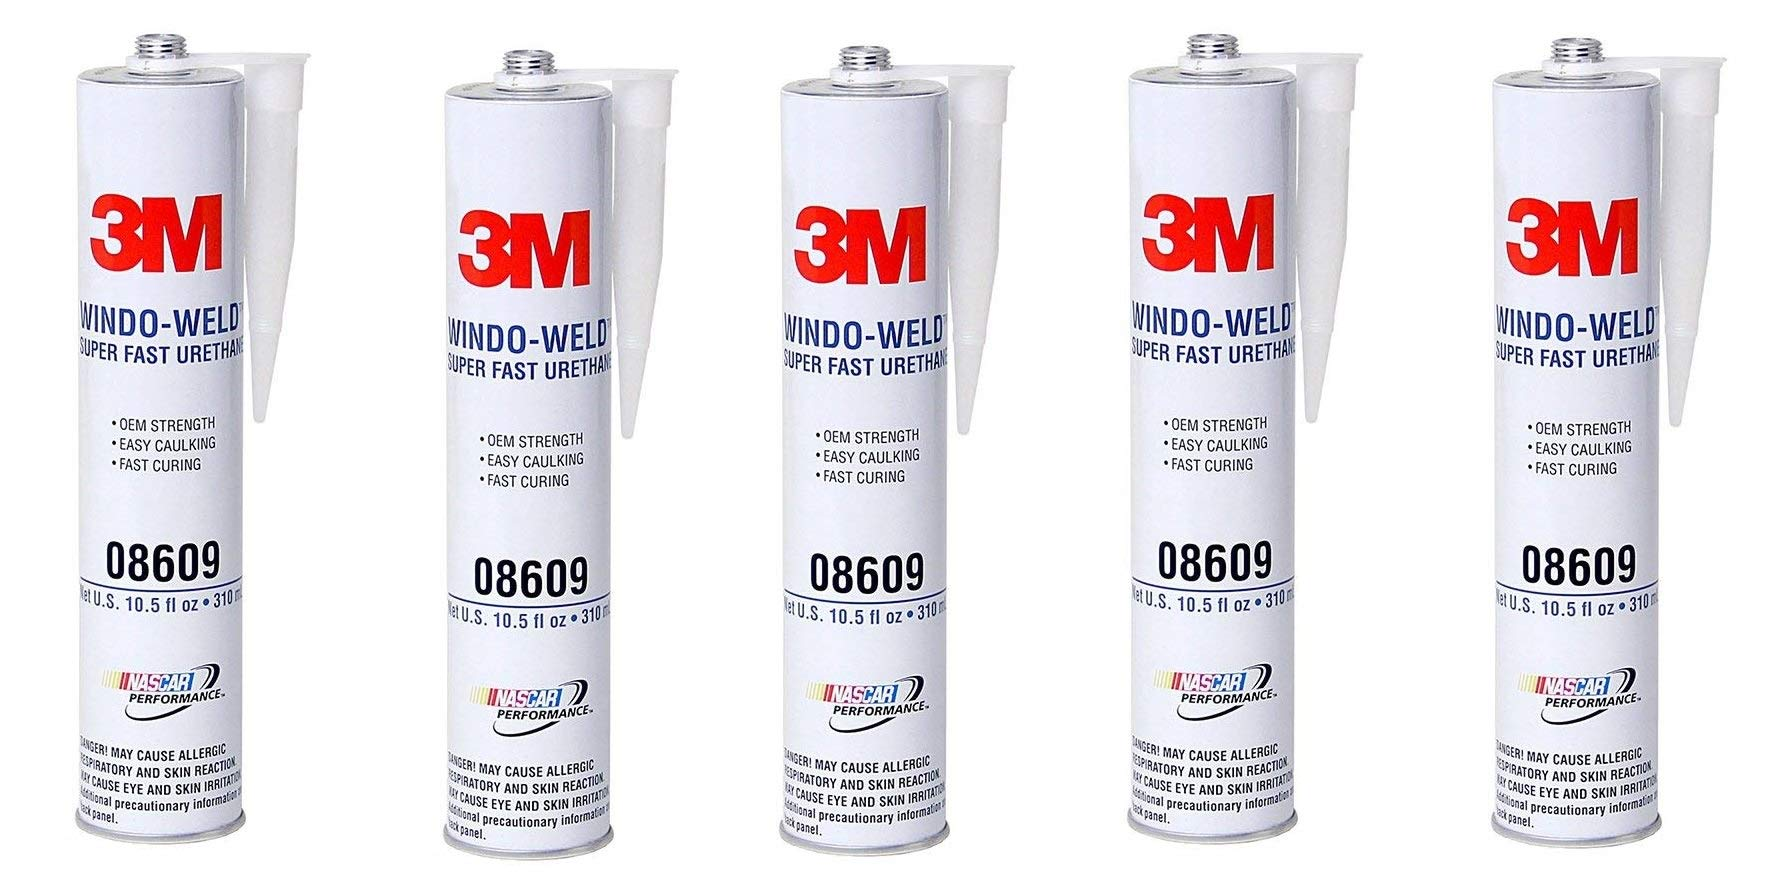 3M 08609 Window-Weld Super Fast Urethane Black Cartridge - 10.5 fl oz, 5 Pack